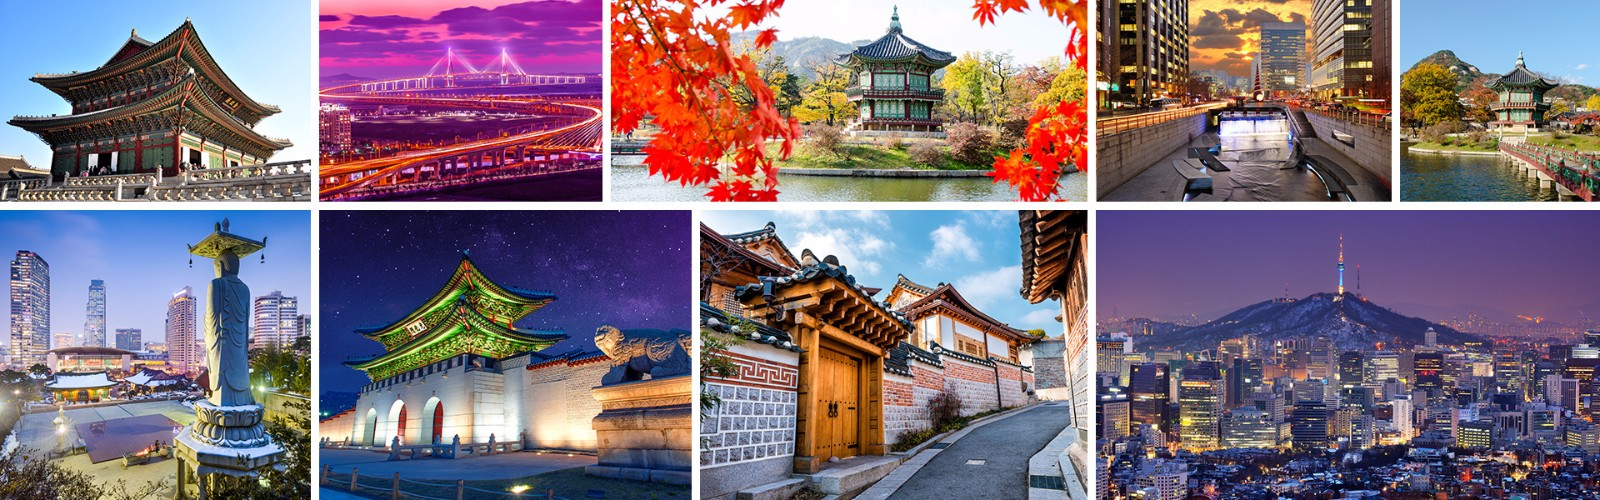 Travel Tours To Seoul Korea